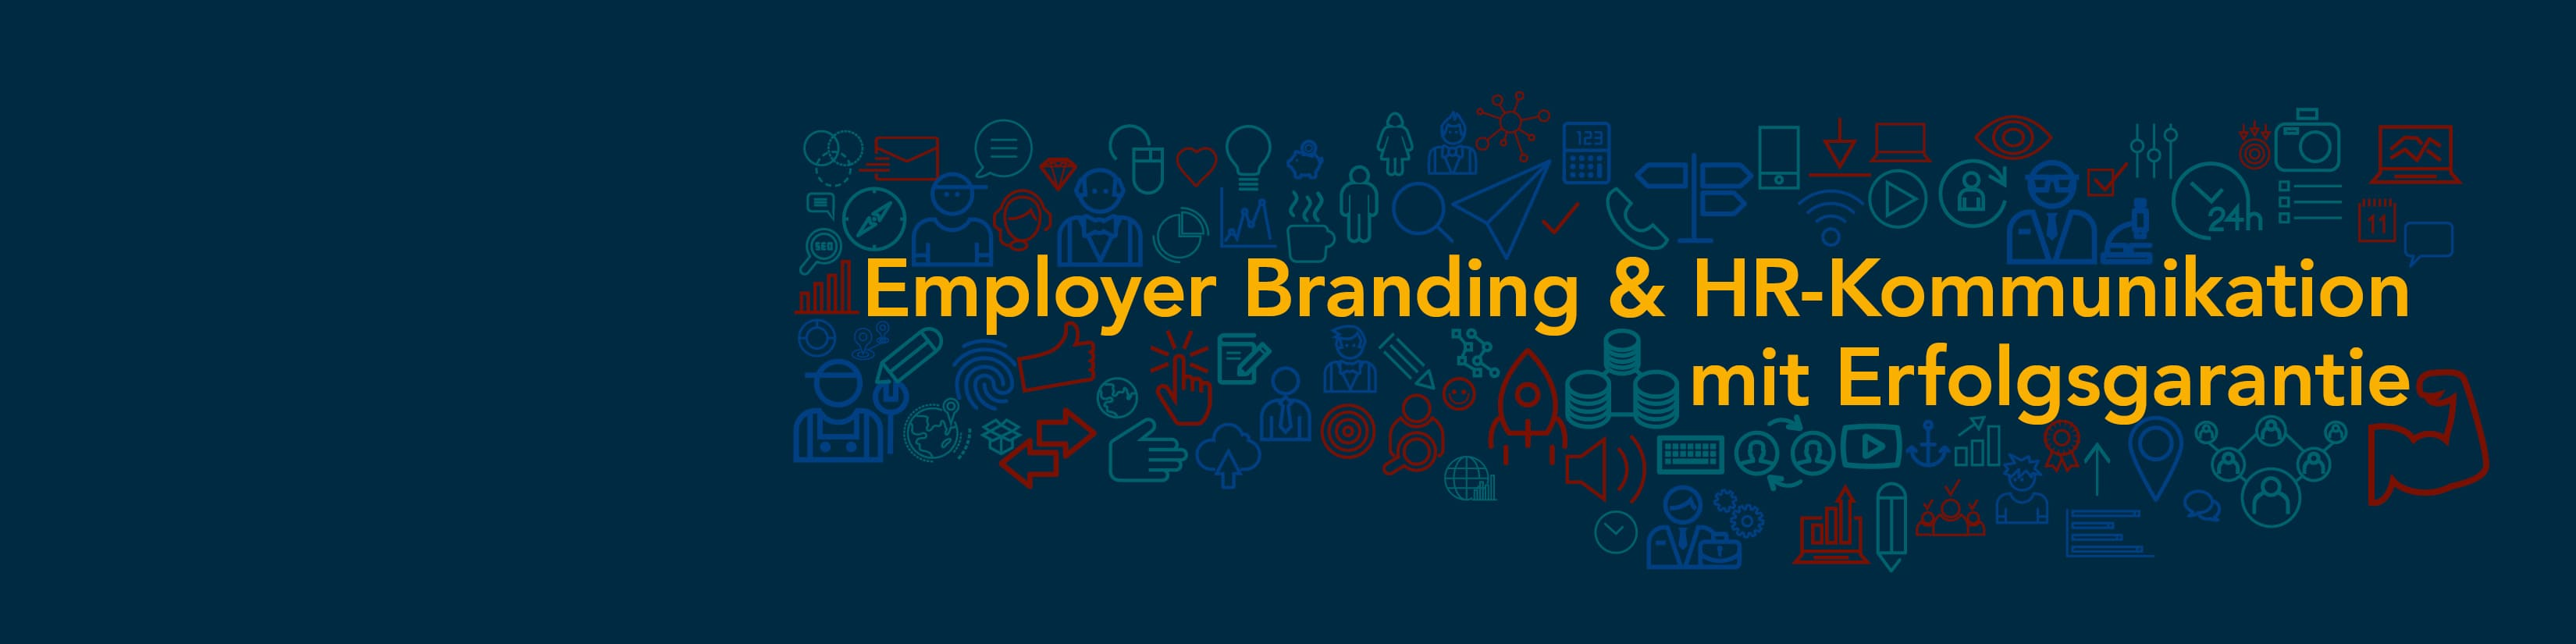 Employer Branding und HR Kommunikation